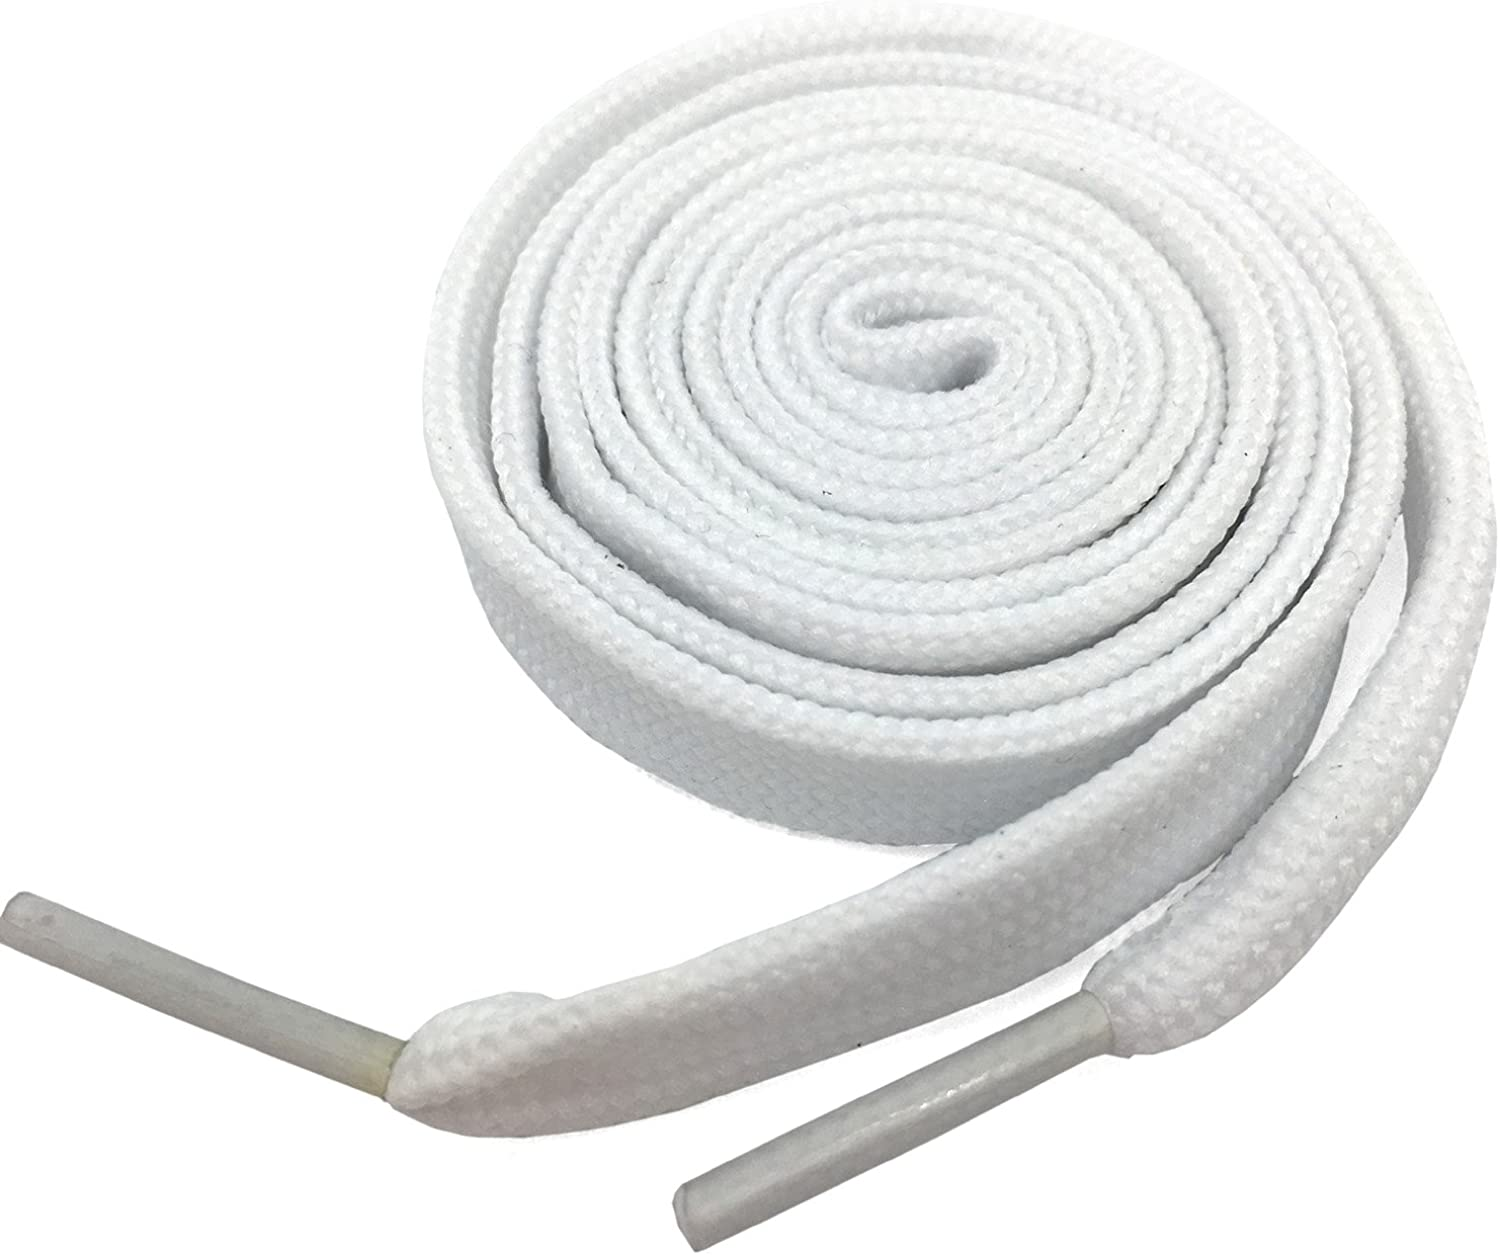 """Fat Shoelaces Thick Flat 2//5/"""" Wide Shoelaces Solid Color for All Shoe Types"""